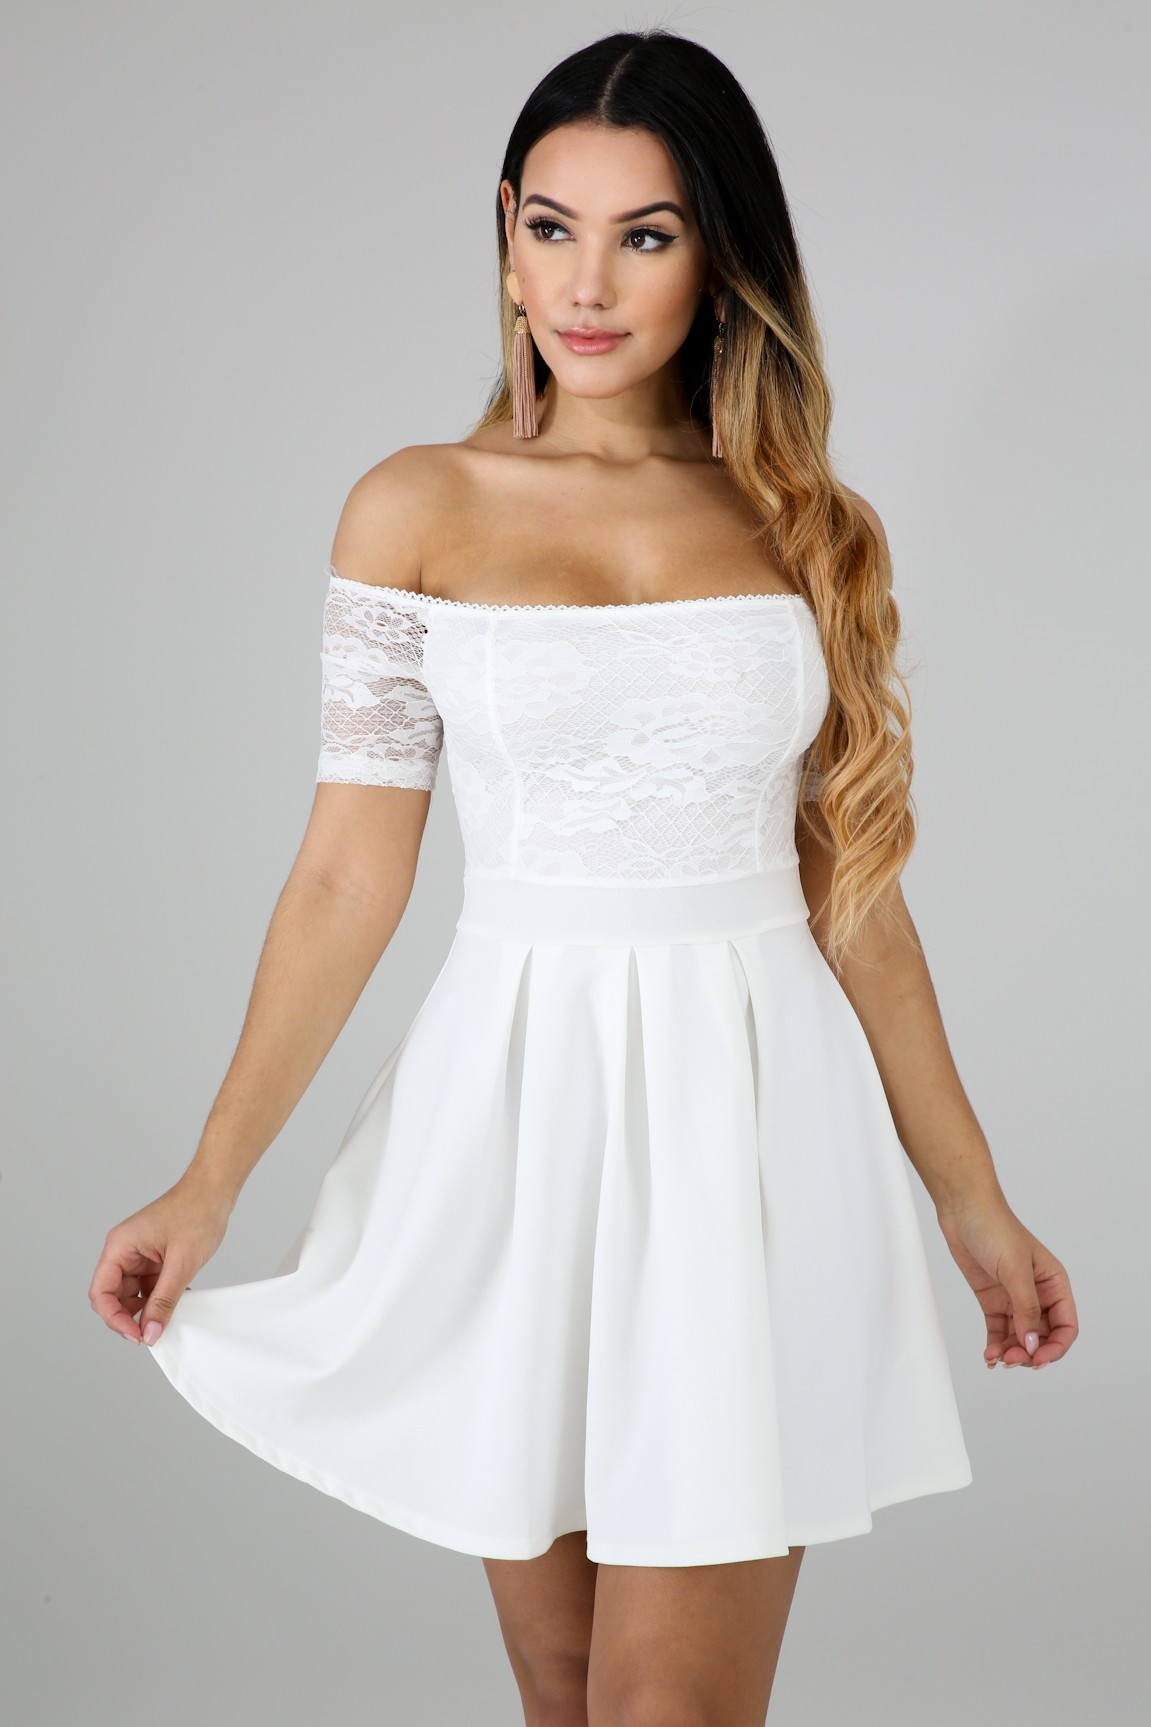 Flirty Lace Dress